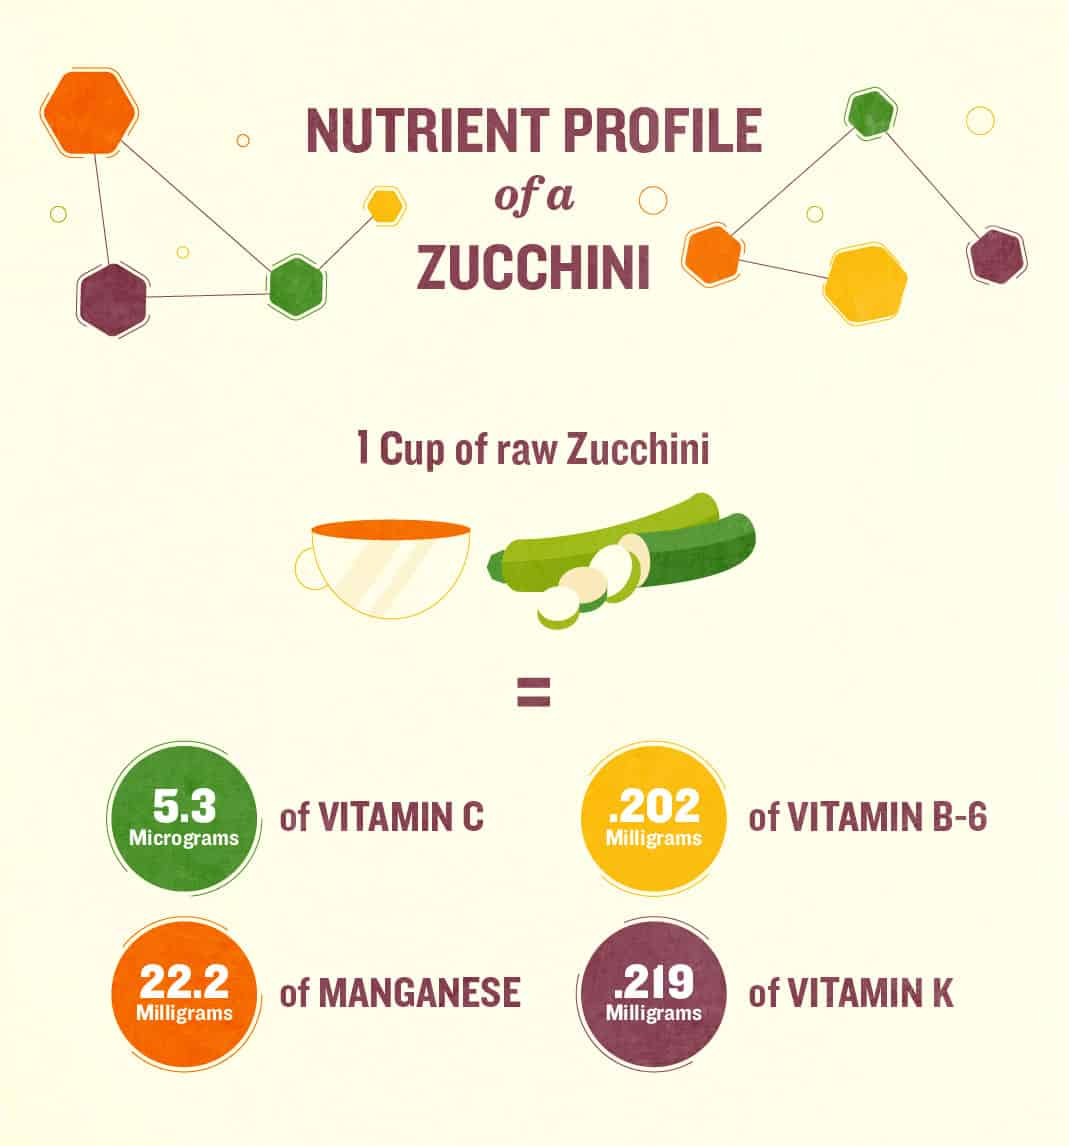 Zucchini Round Up - Nutrient Profile of Zucchinis